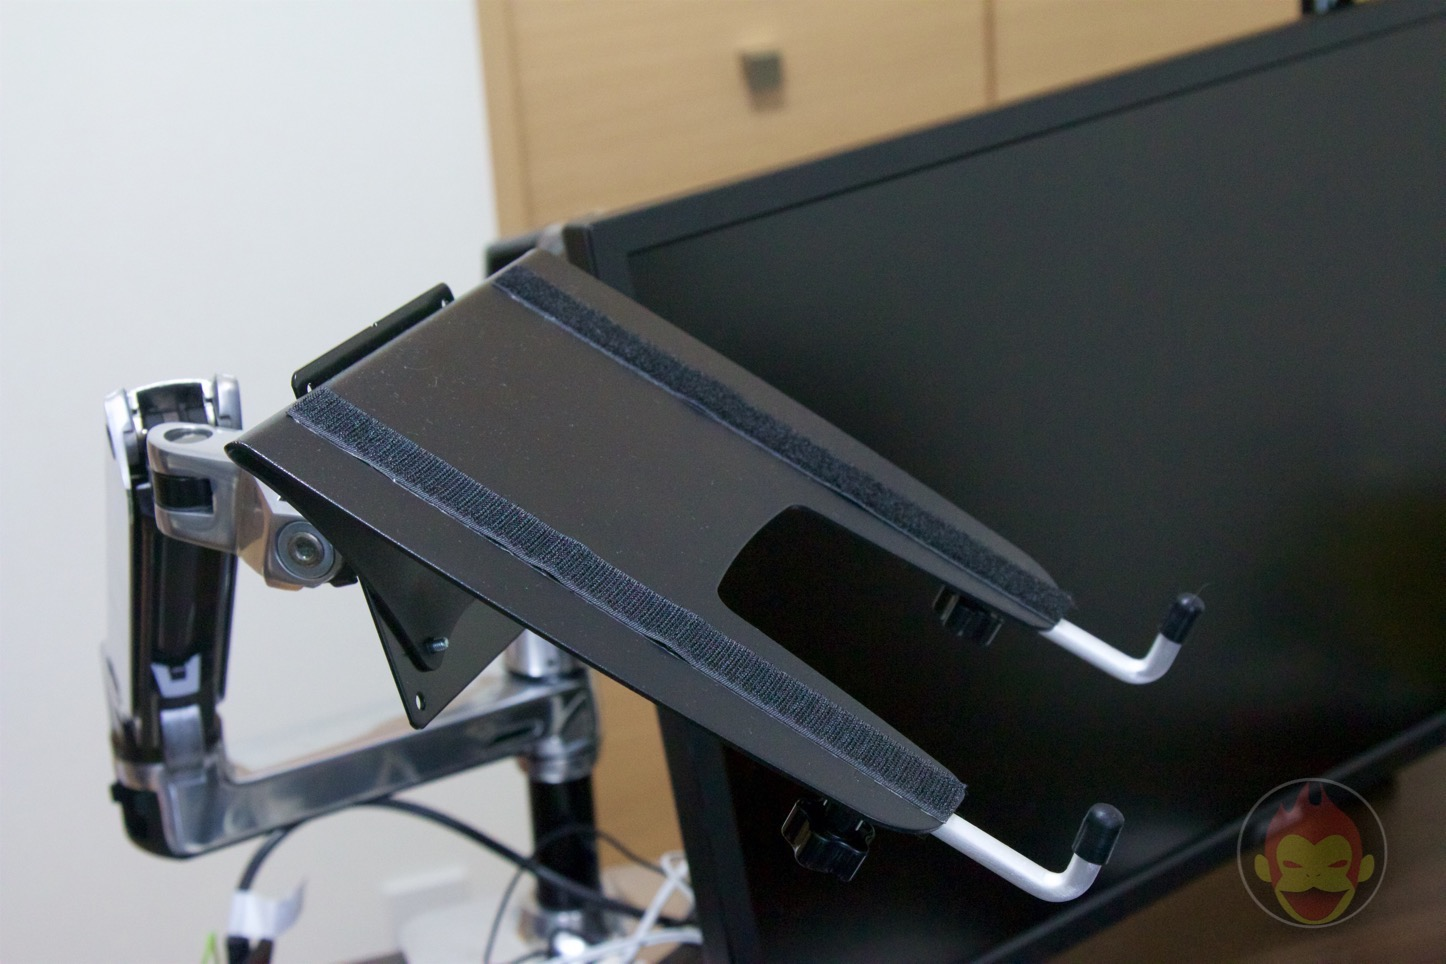 Ergotron LX Dual Desk Mount Arm Stacking